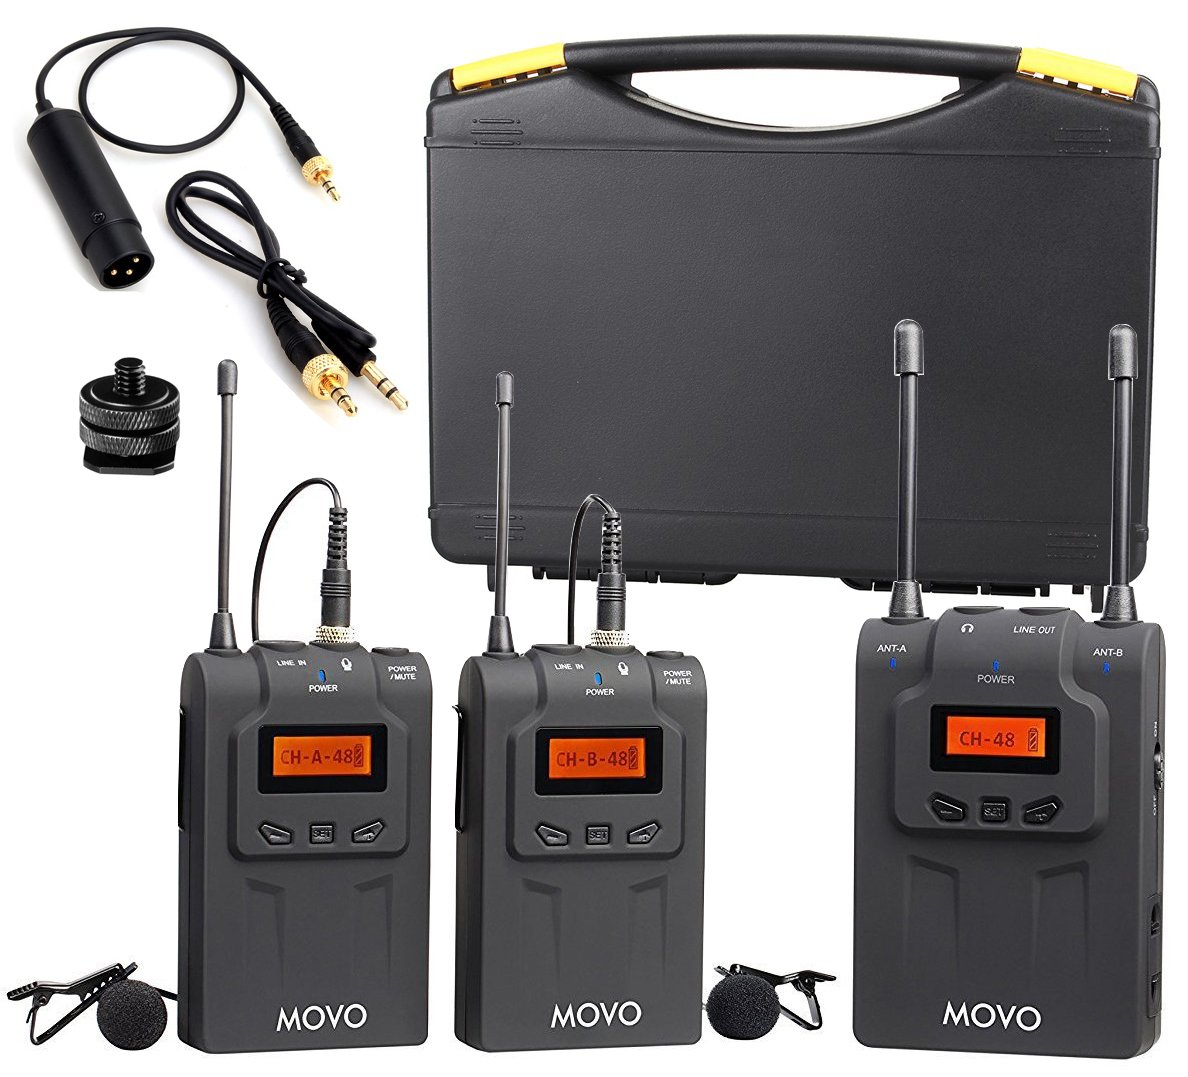 Movo WMIC80 UHF Wireless Lavalier Microphone System with 2 Bodypack Transmitters, Portable Receiver, 2 Lav Mics, & Shoe Mount for DSLR Cameras (330' Range) by Movo